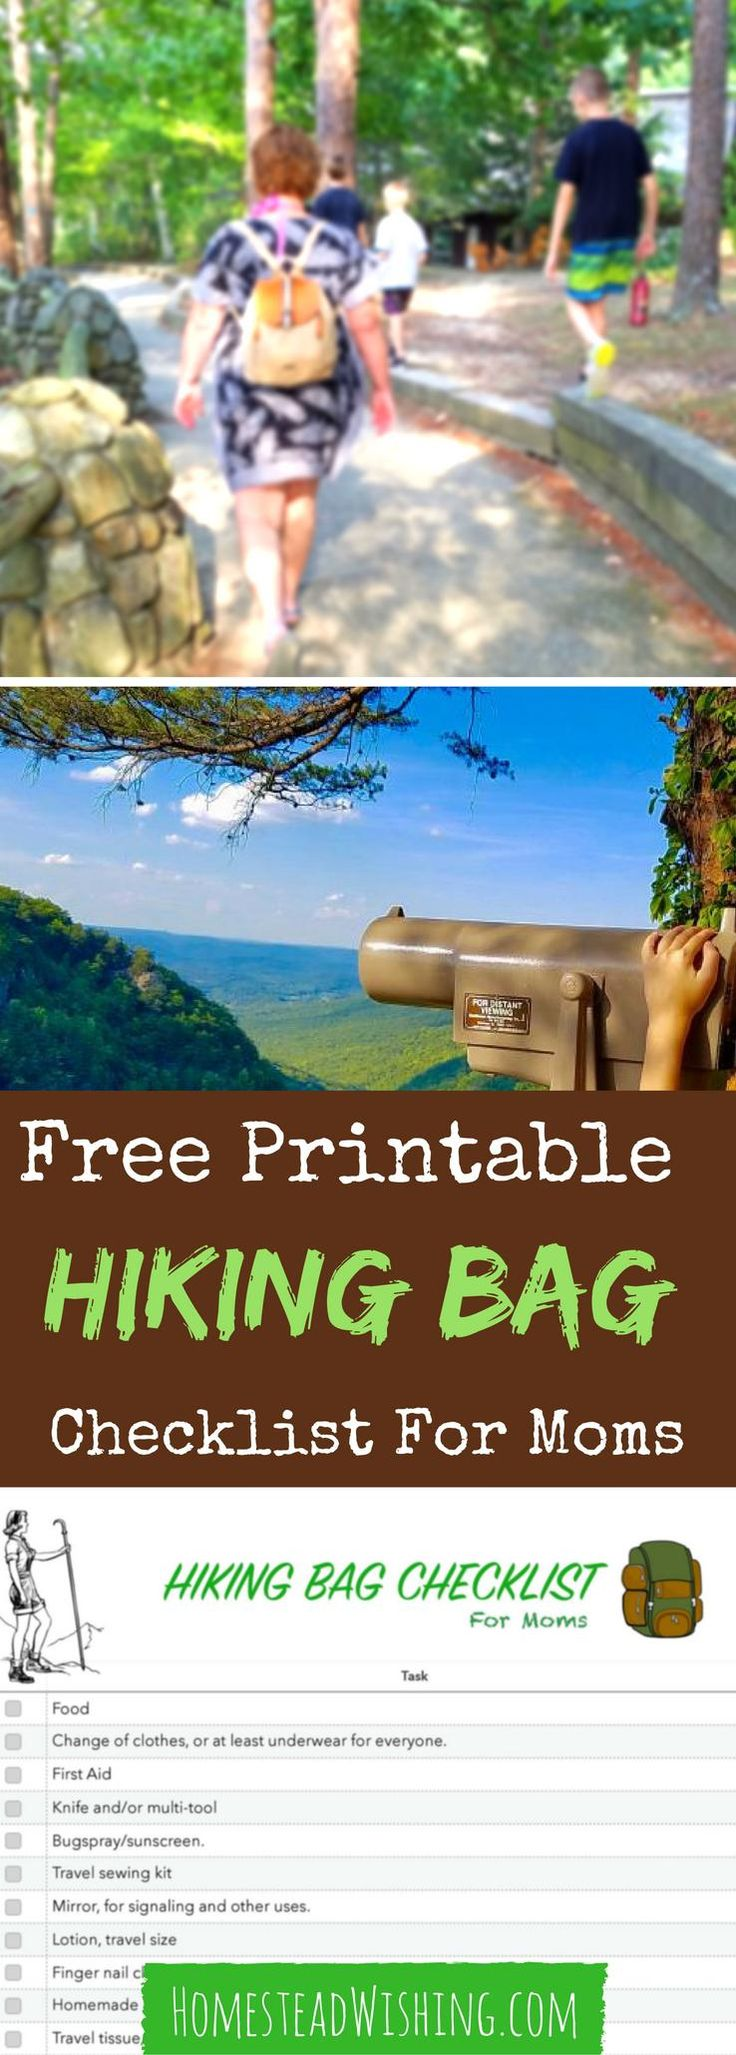 As moms we tend to overpack. That's okay when you are riding in a car, but not for a hike, even a short one. The backpack will dig into your shoulders possibly causing pain. Get my free printable checklist to make sure you have everything you need, for your little munchkins, but not too much! | Homestead Wishing, Author, Kristi Wheeler | http://homesteadwishing.com/hiking-bag-list/ | Hiking-bag-list